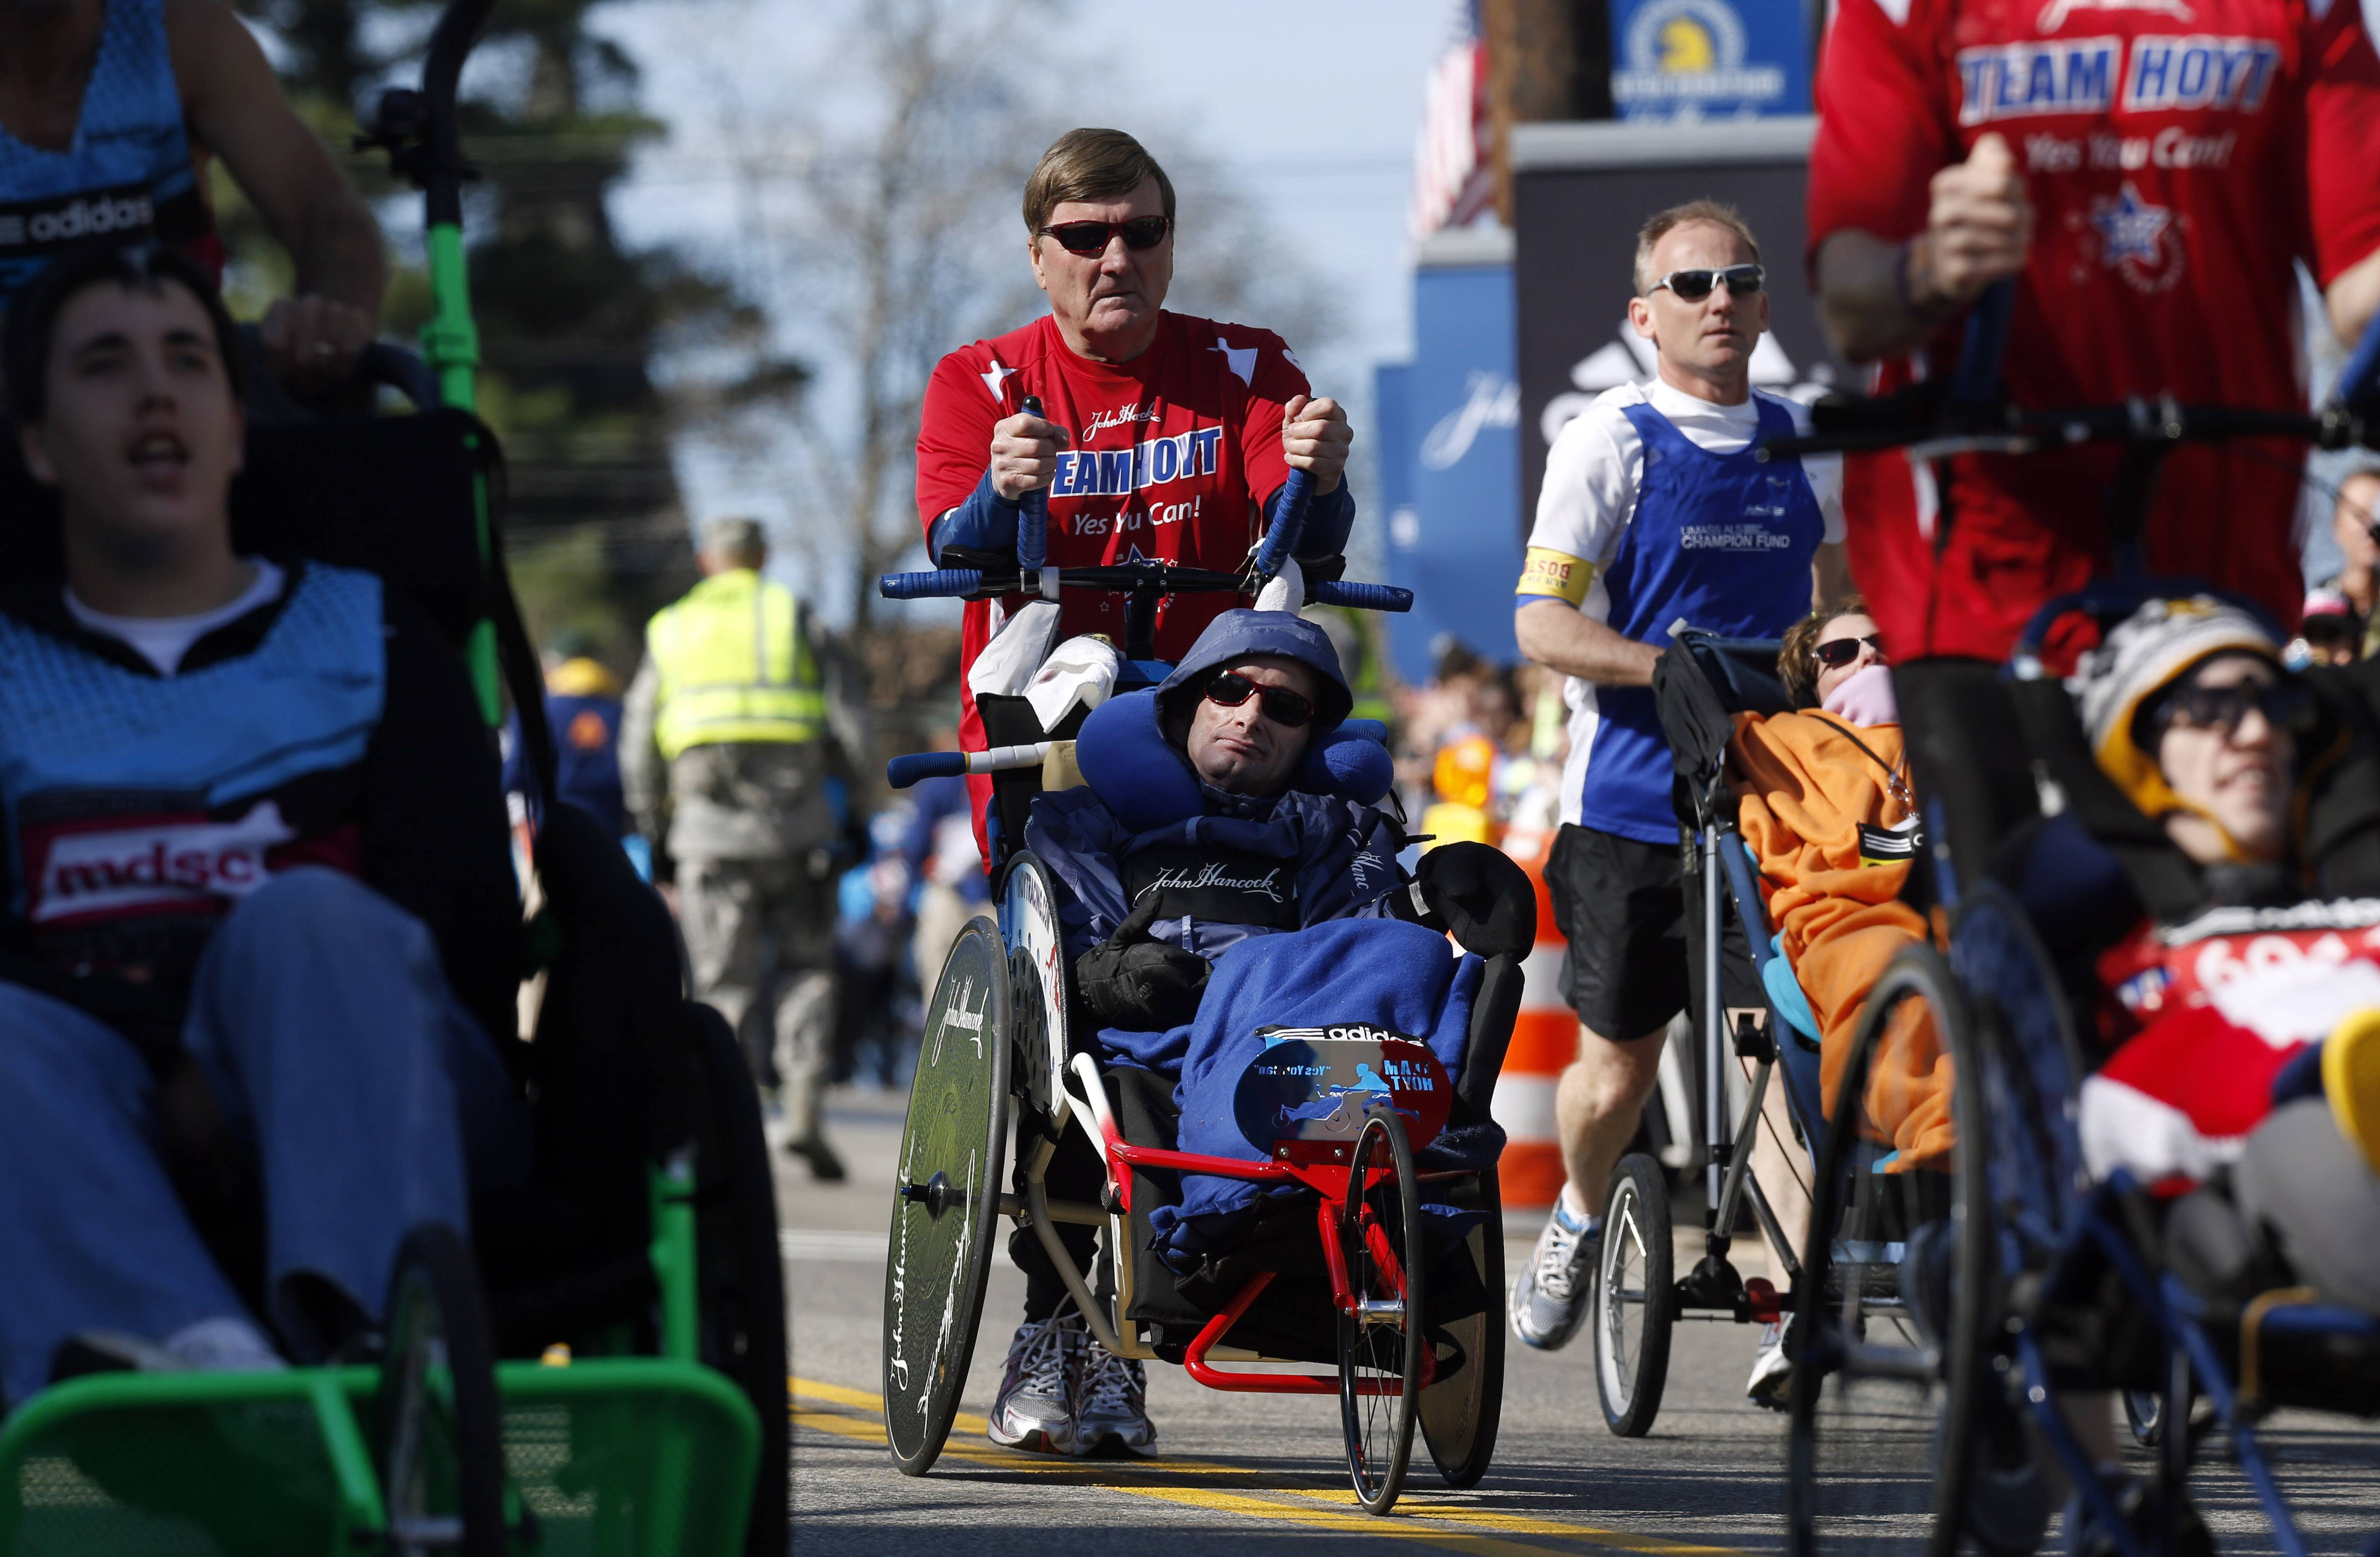 Dick Hoyt pushes his son Rick Hoyt, both from Holland, Mass., center, as they compete in the wheelchair division of the 118th Boston Marathon Monday, April 21, 2014 in Hopkinton, Mass. They are competing in their 32nd Boston Marathon and have said this will be their last.